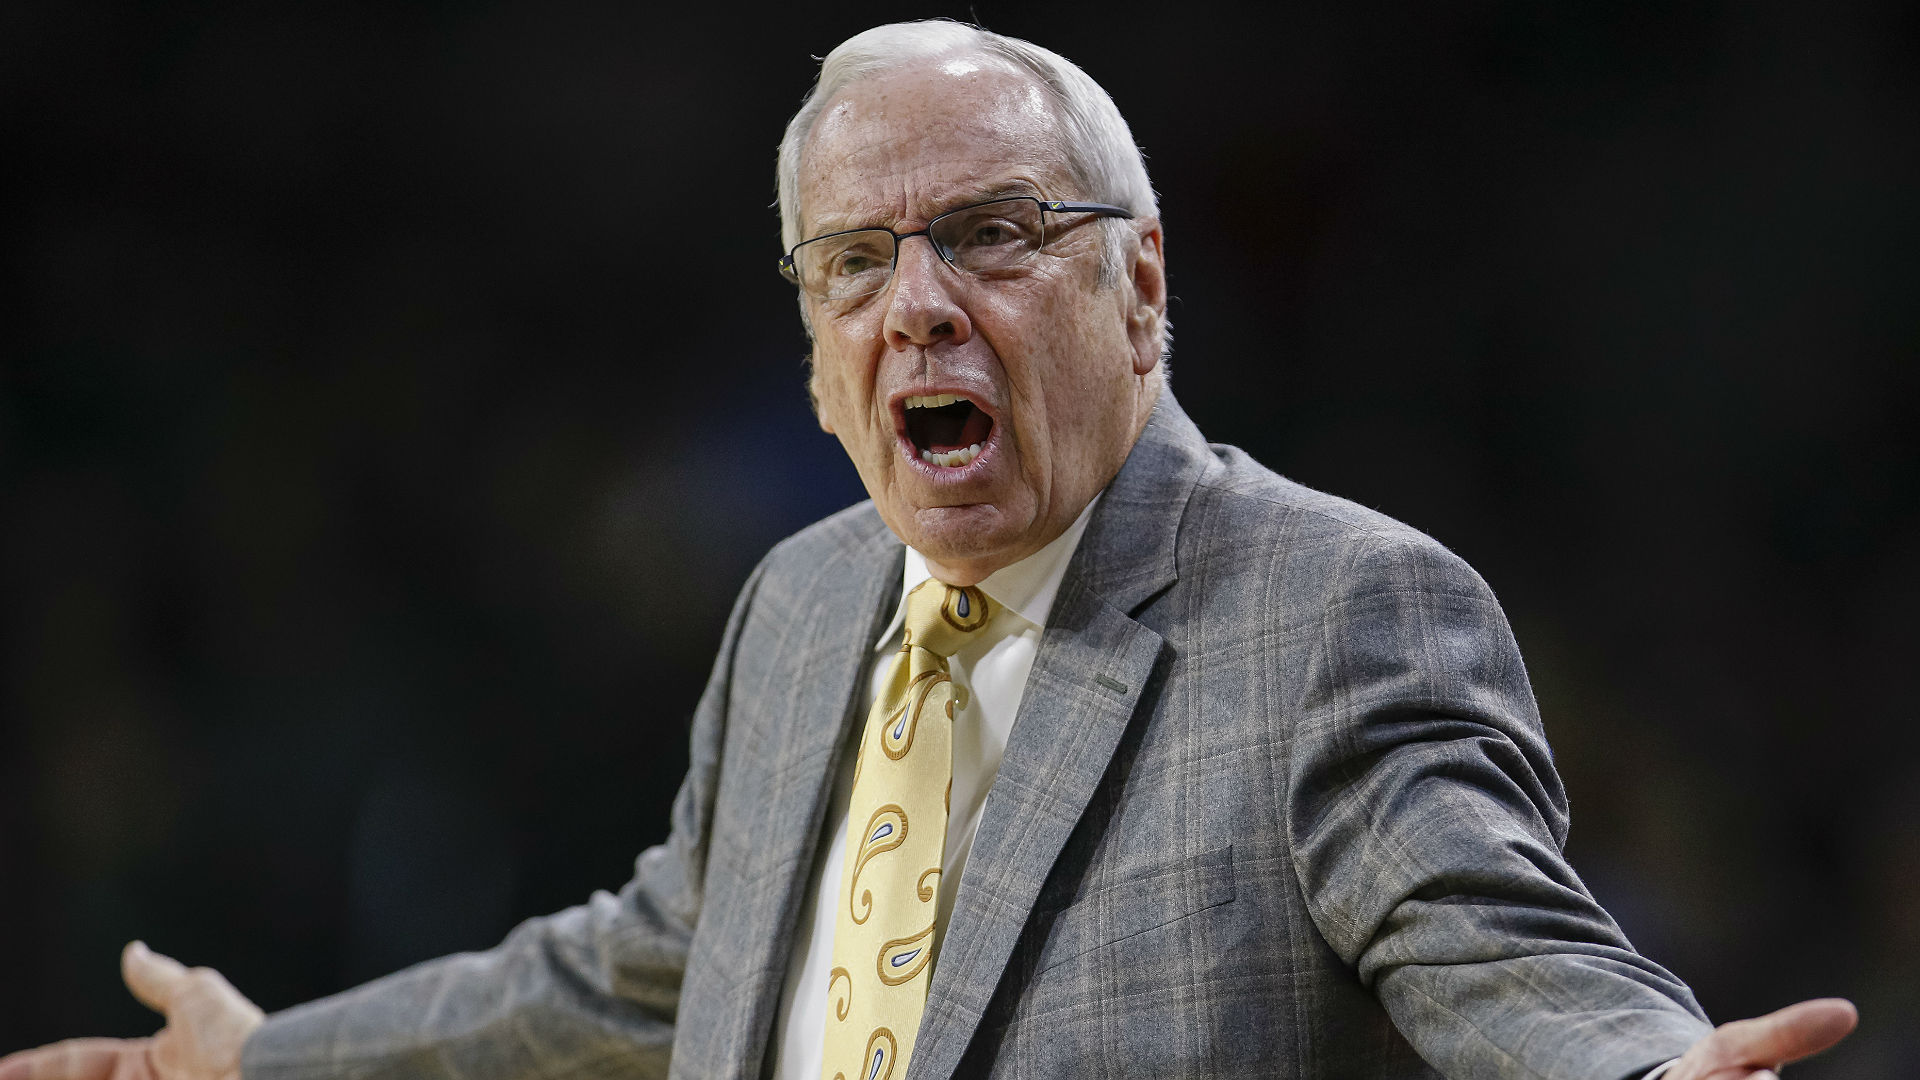 Roy Williams apologizes for F-bomb during intense postgame news conference - sporting news